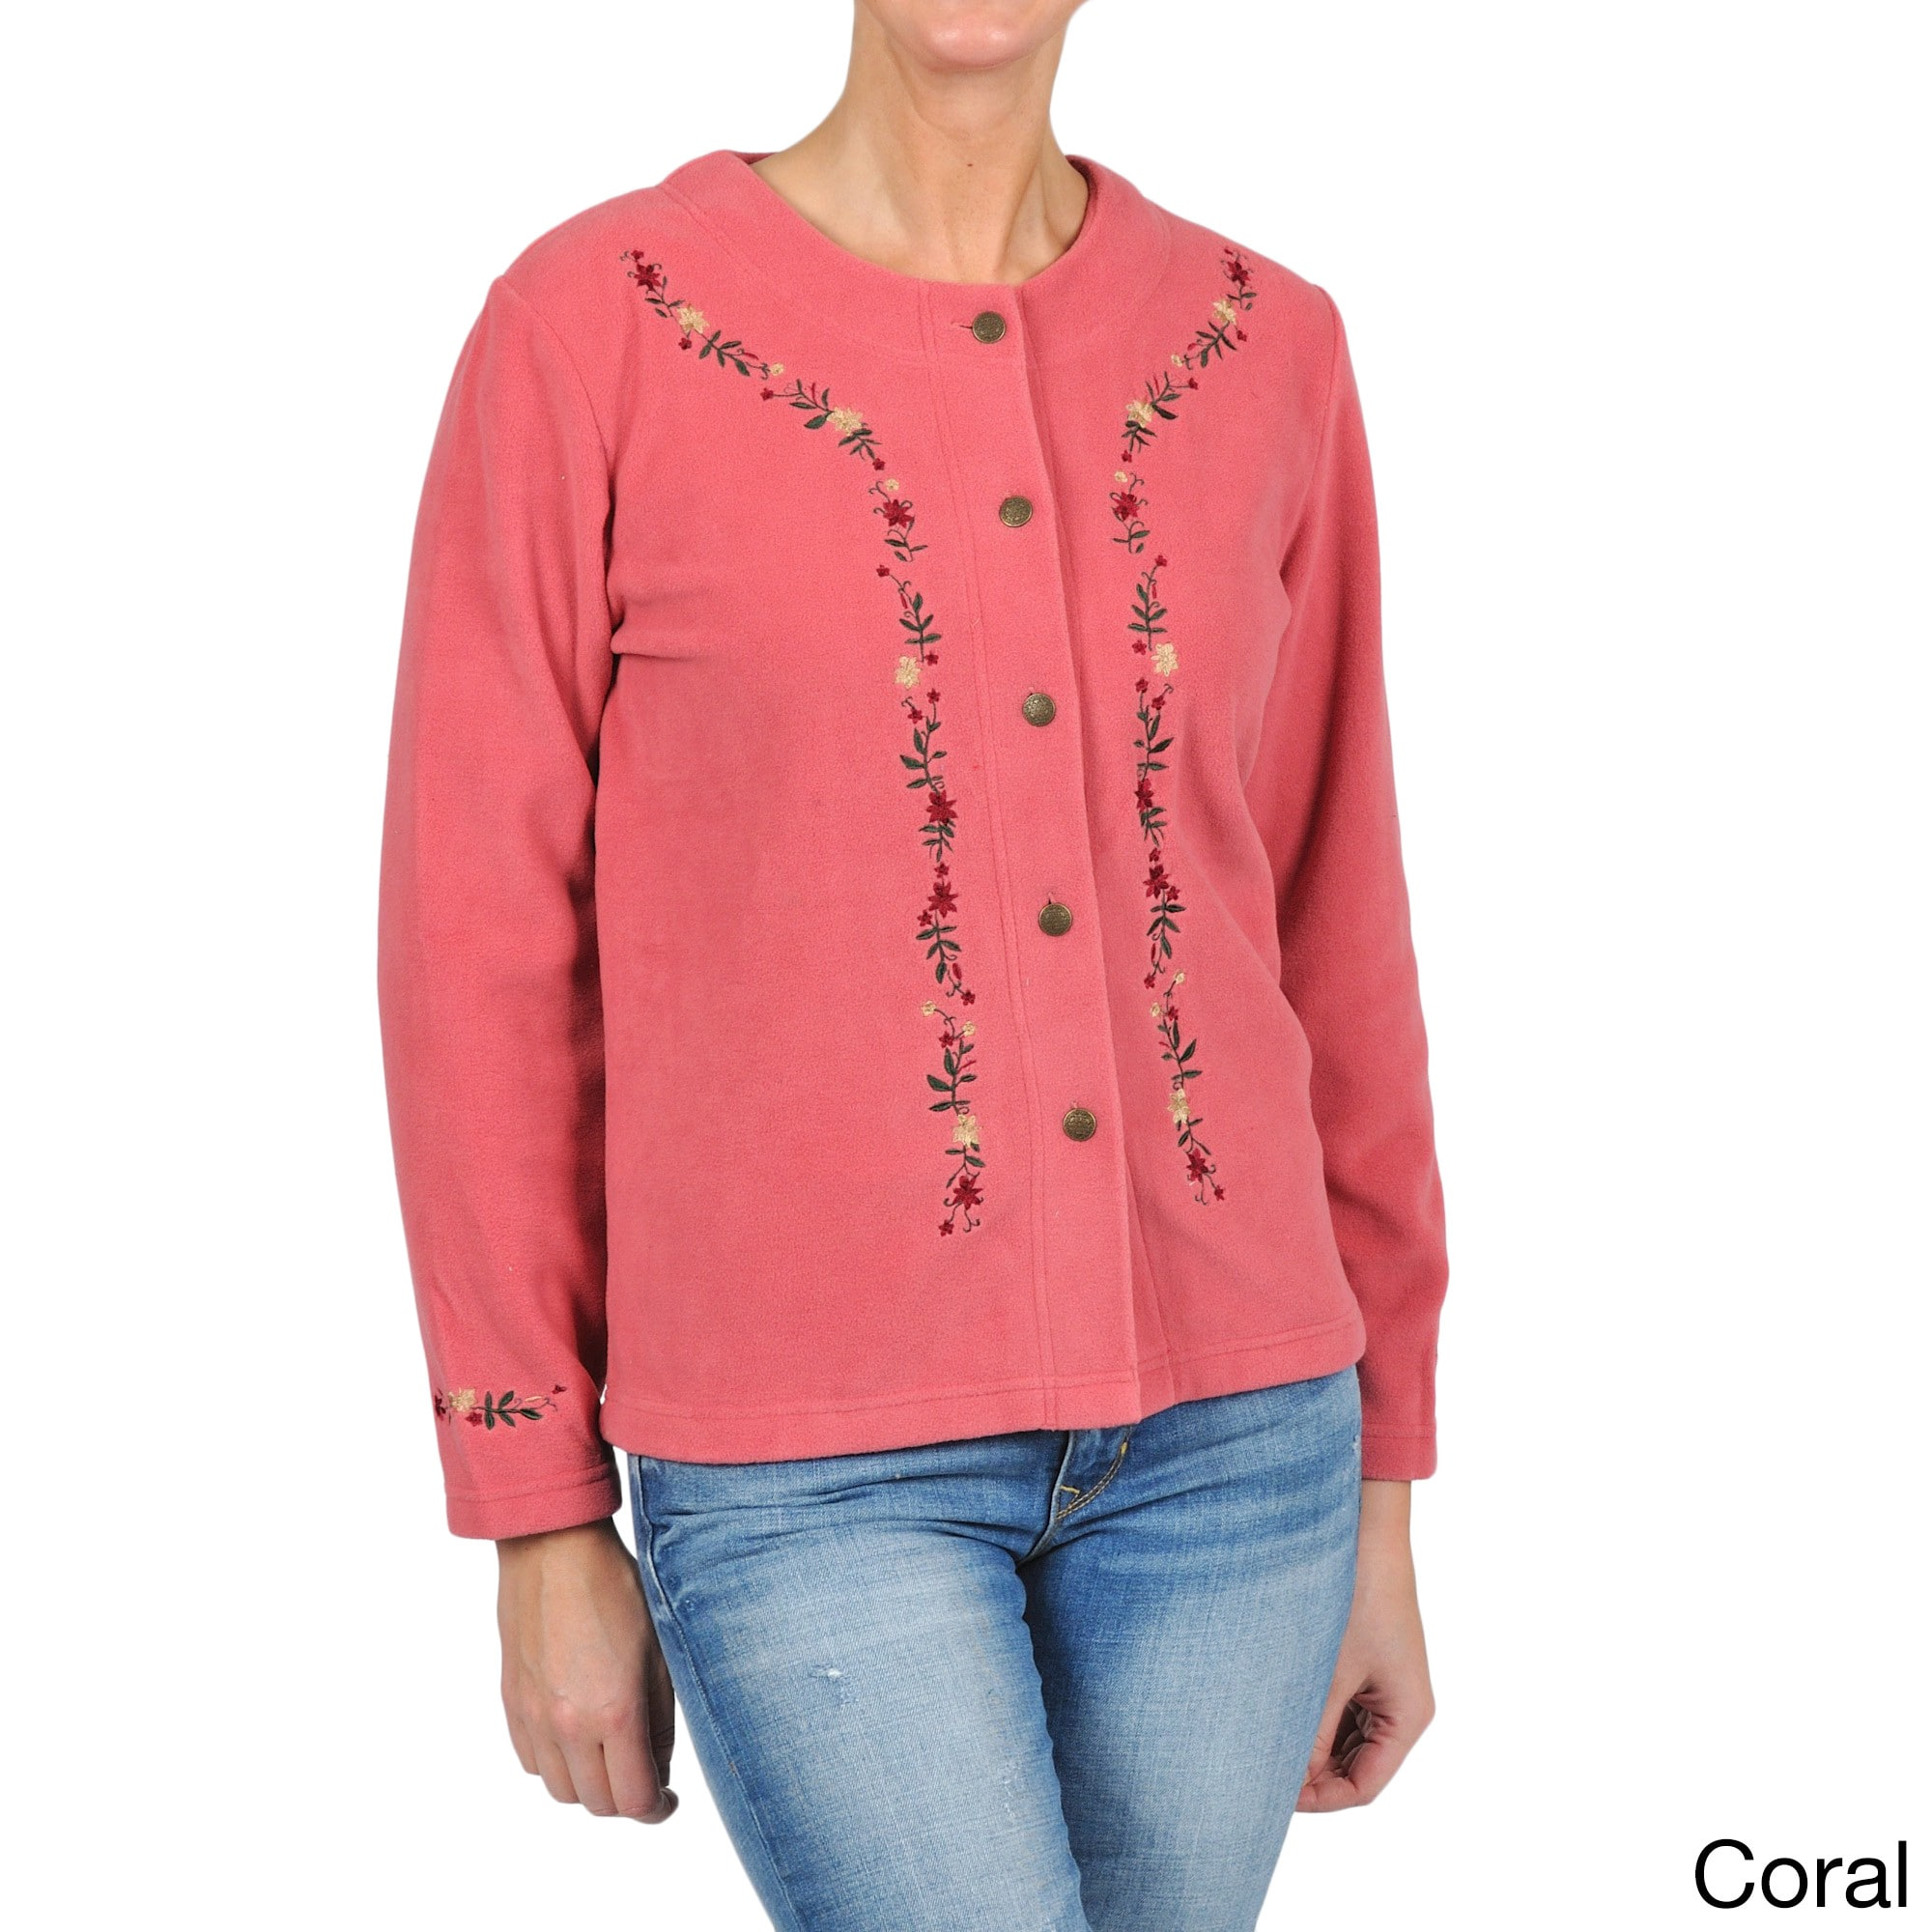 La Cera Women's Embroidered Fleece Jacket - Free Shipping On Orders Over  $45 - Overstock.com - 14006010